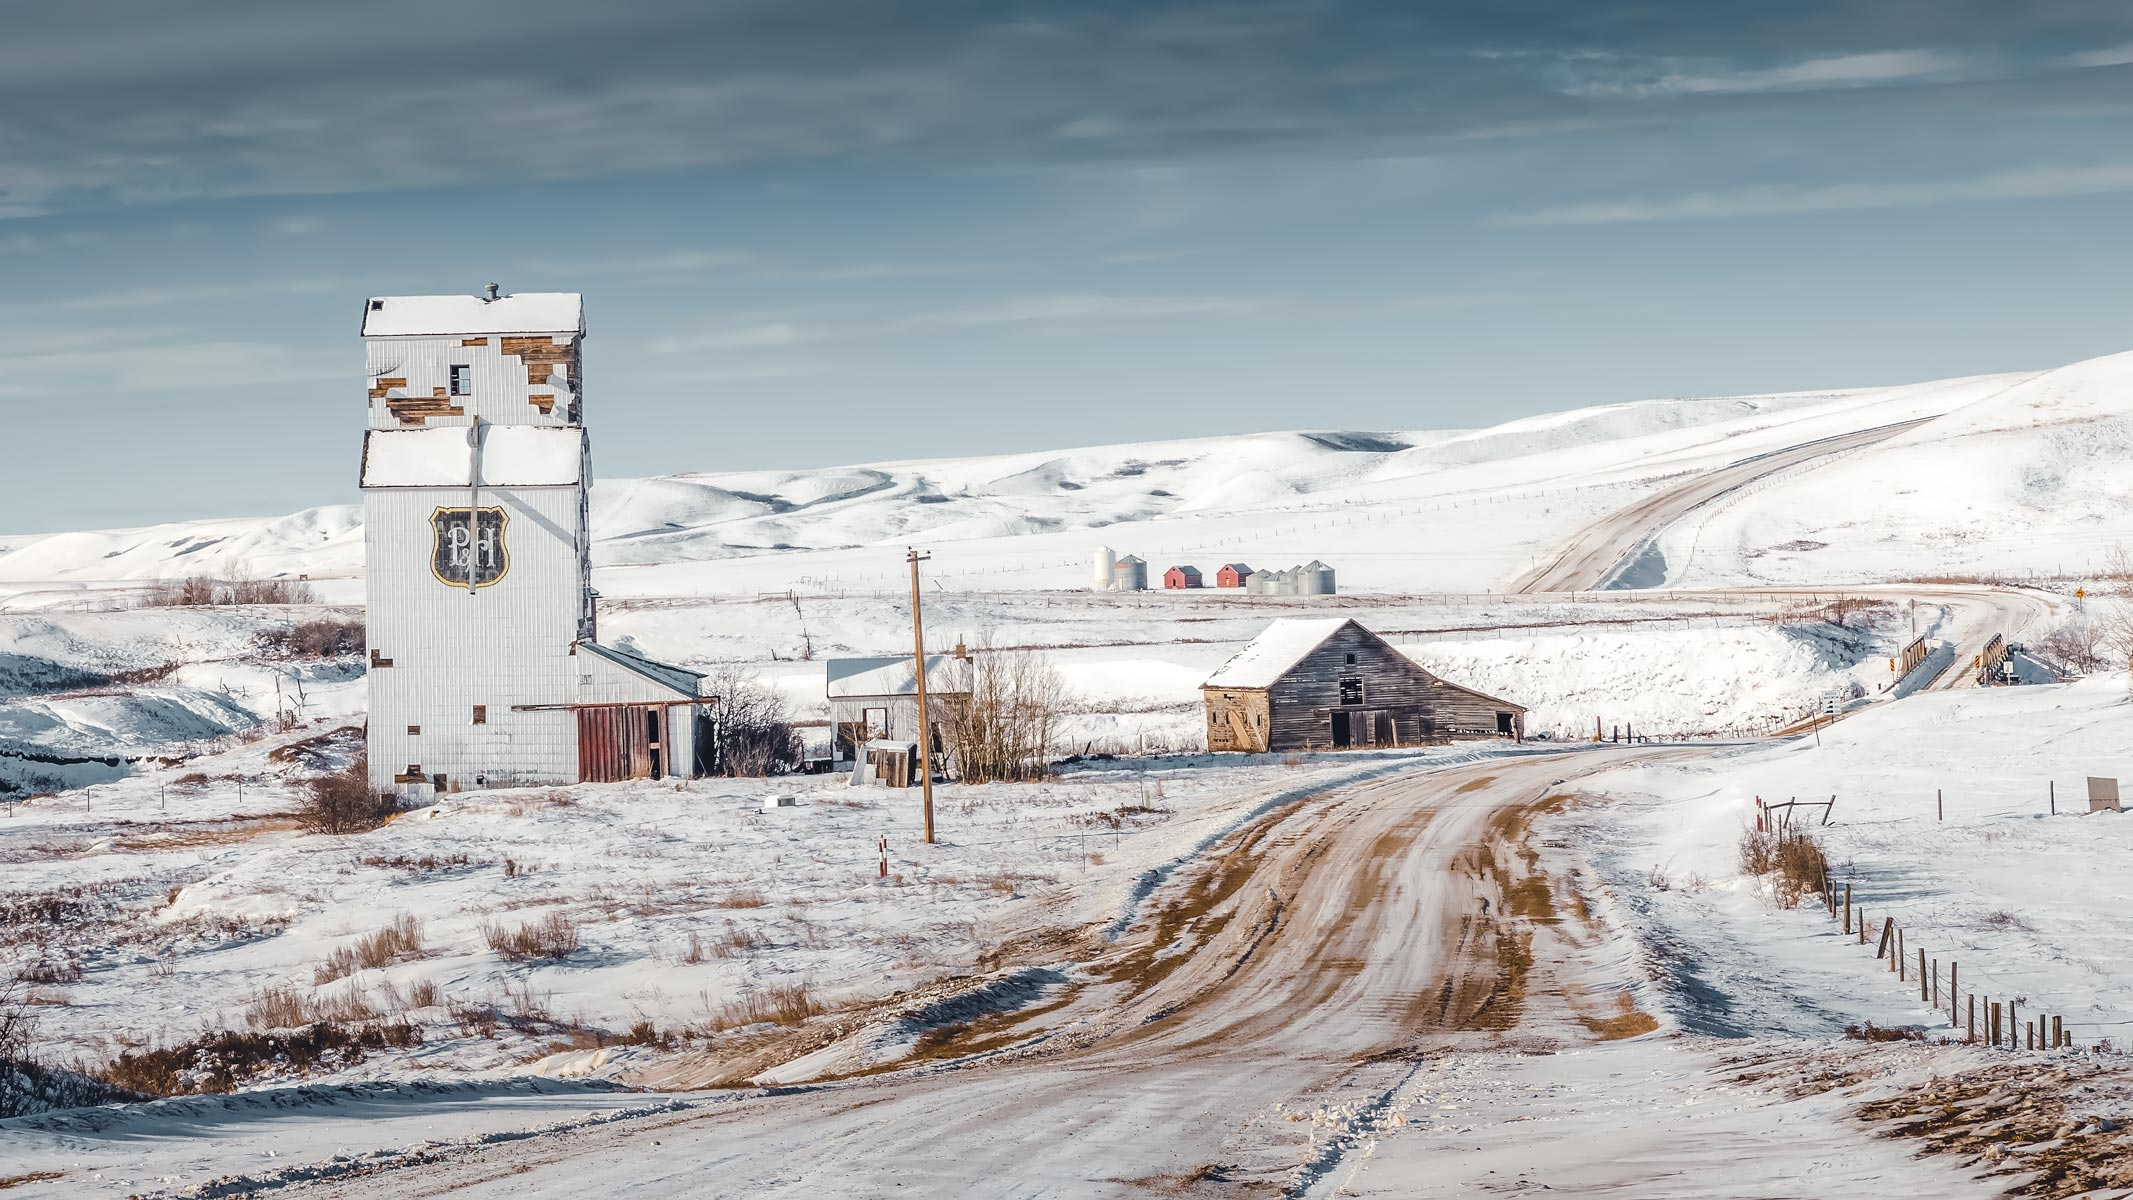 A view of the ghost town of Sharples, Alberta